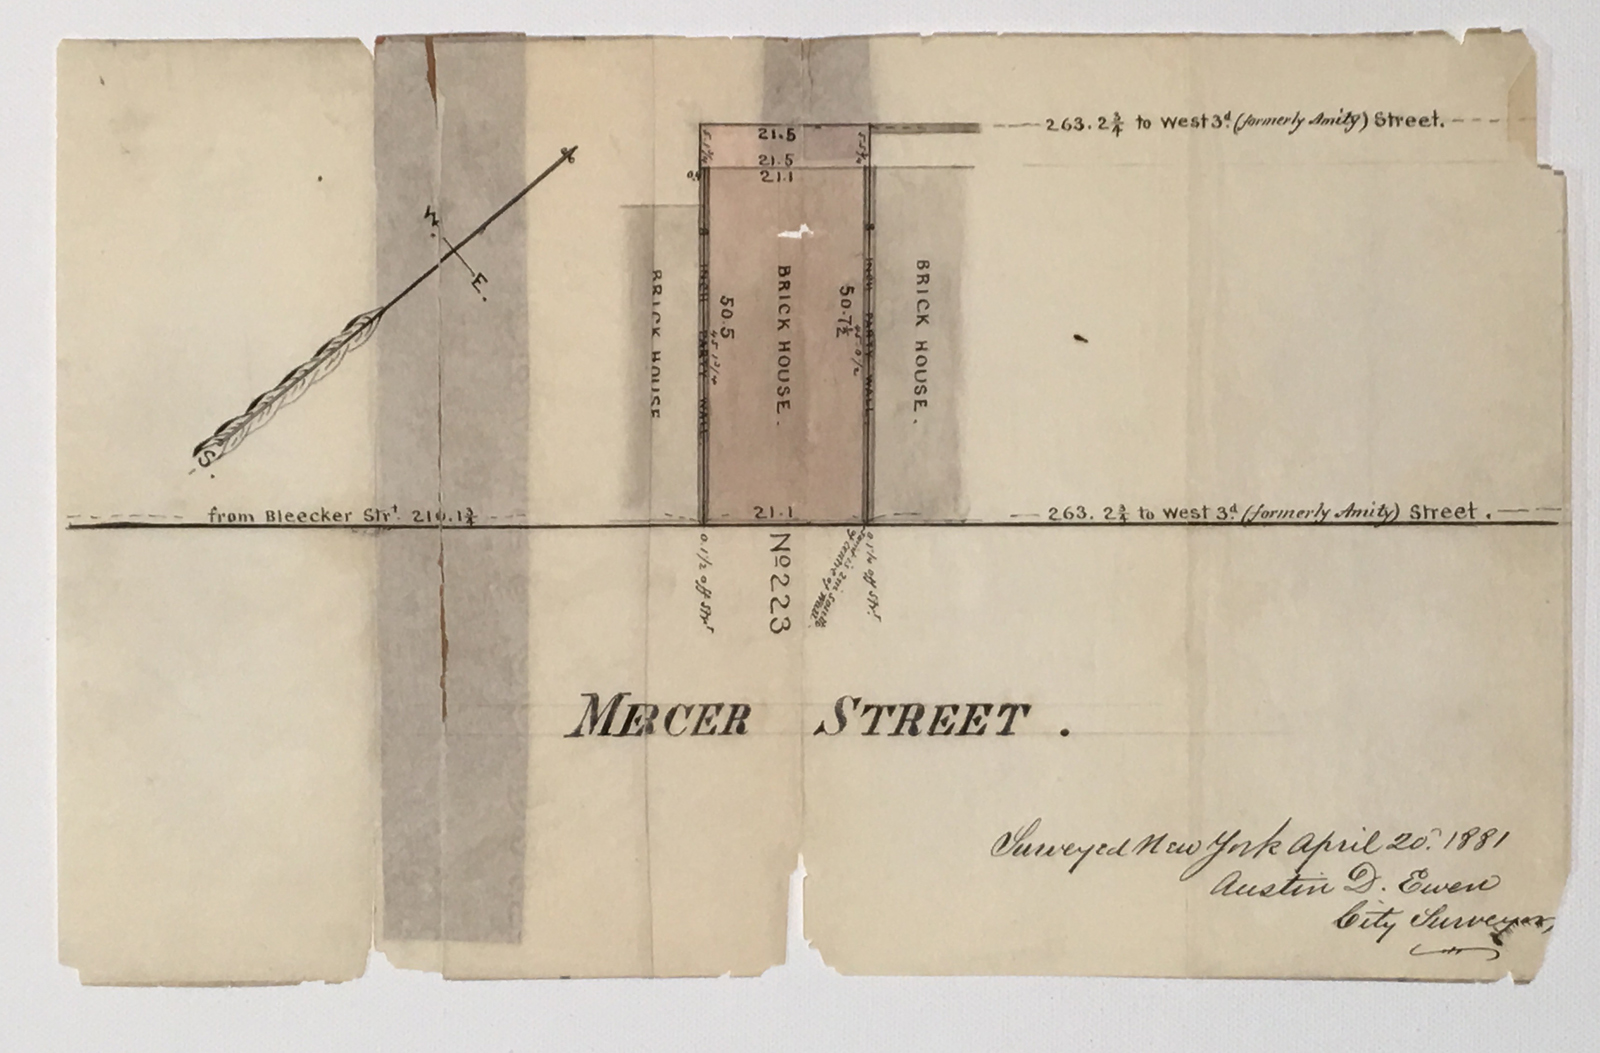 Surveyor's Map of Mercer Street 1881